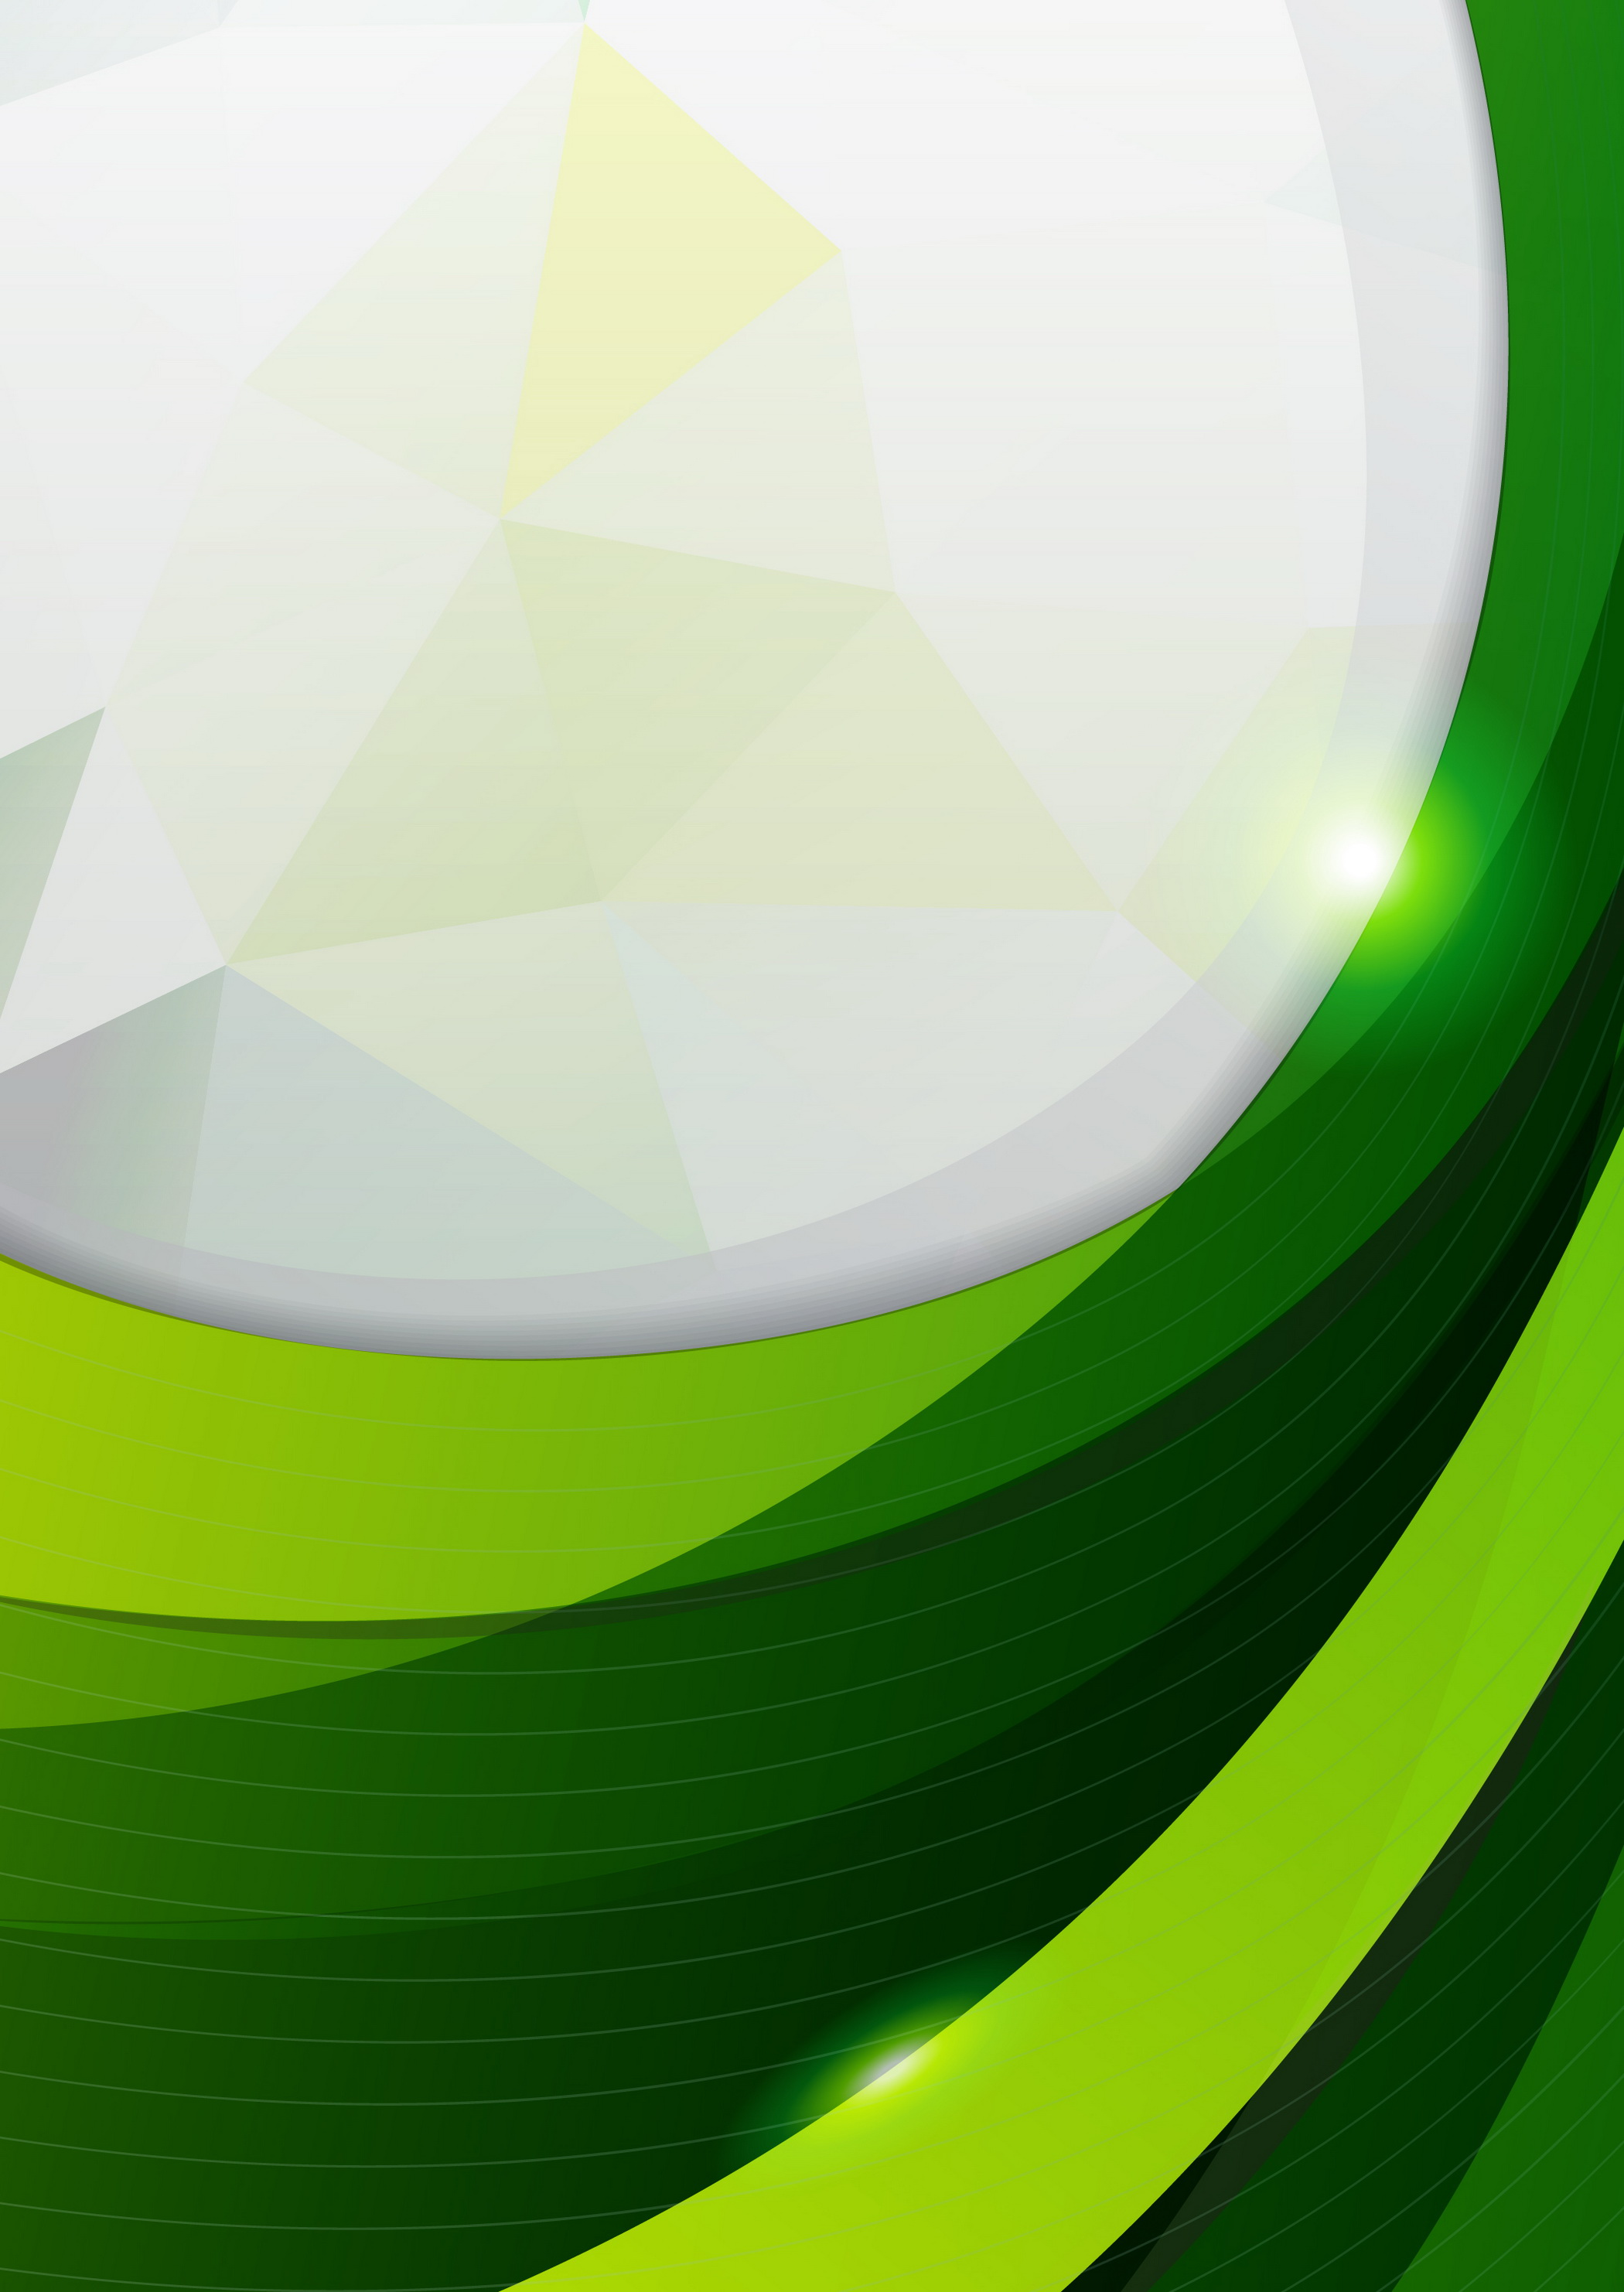 Simple Abstract Green Background Curve Foil Texture